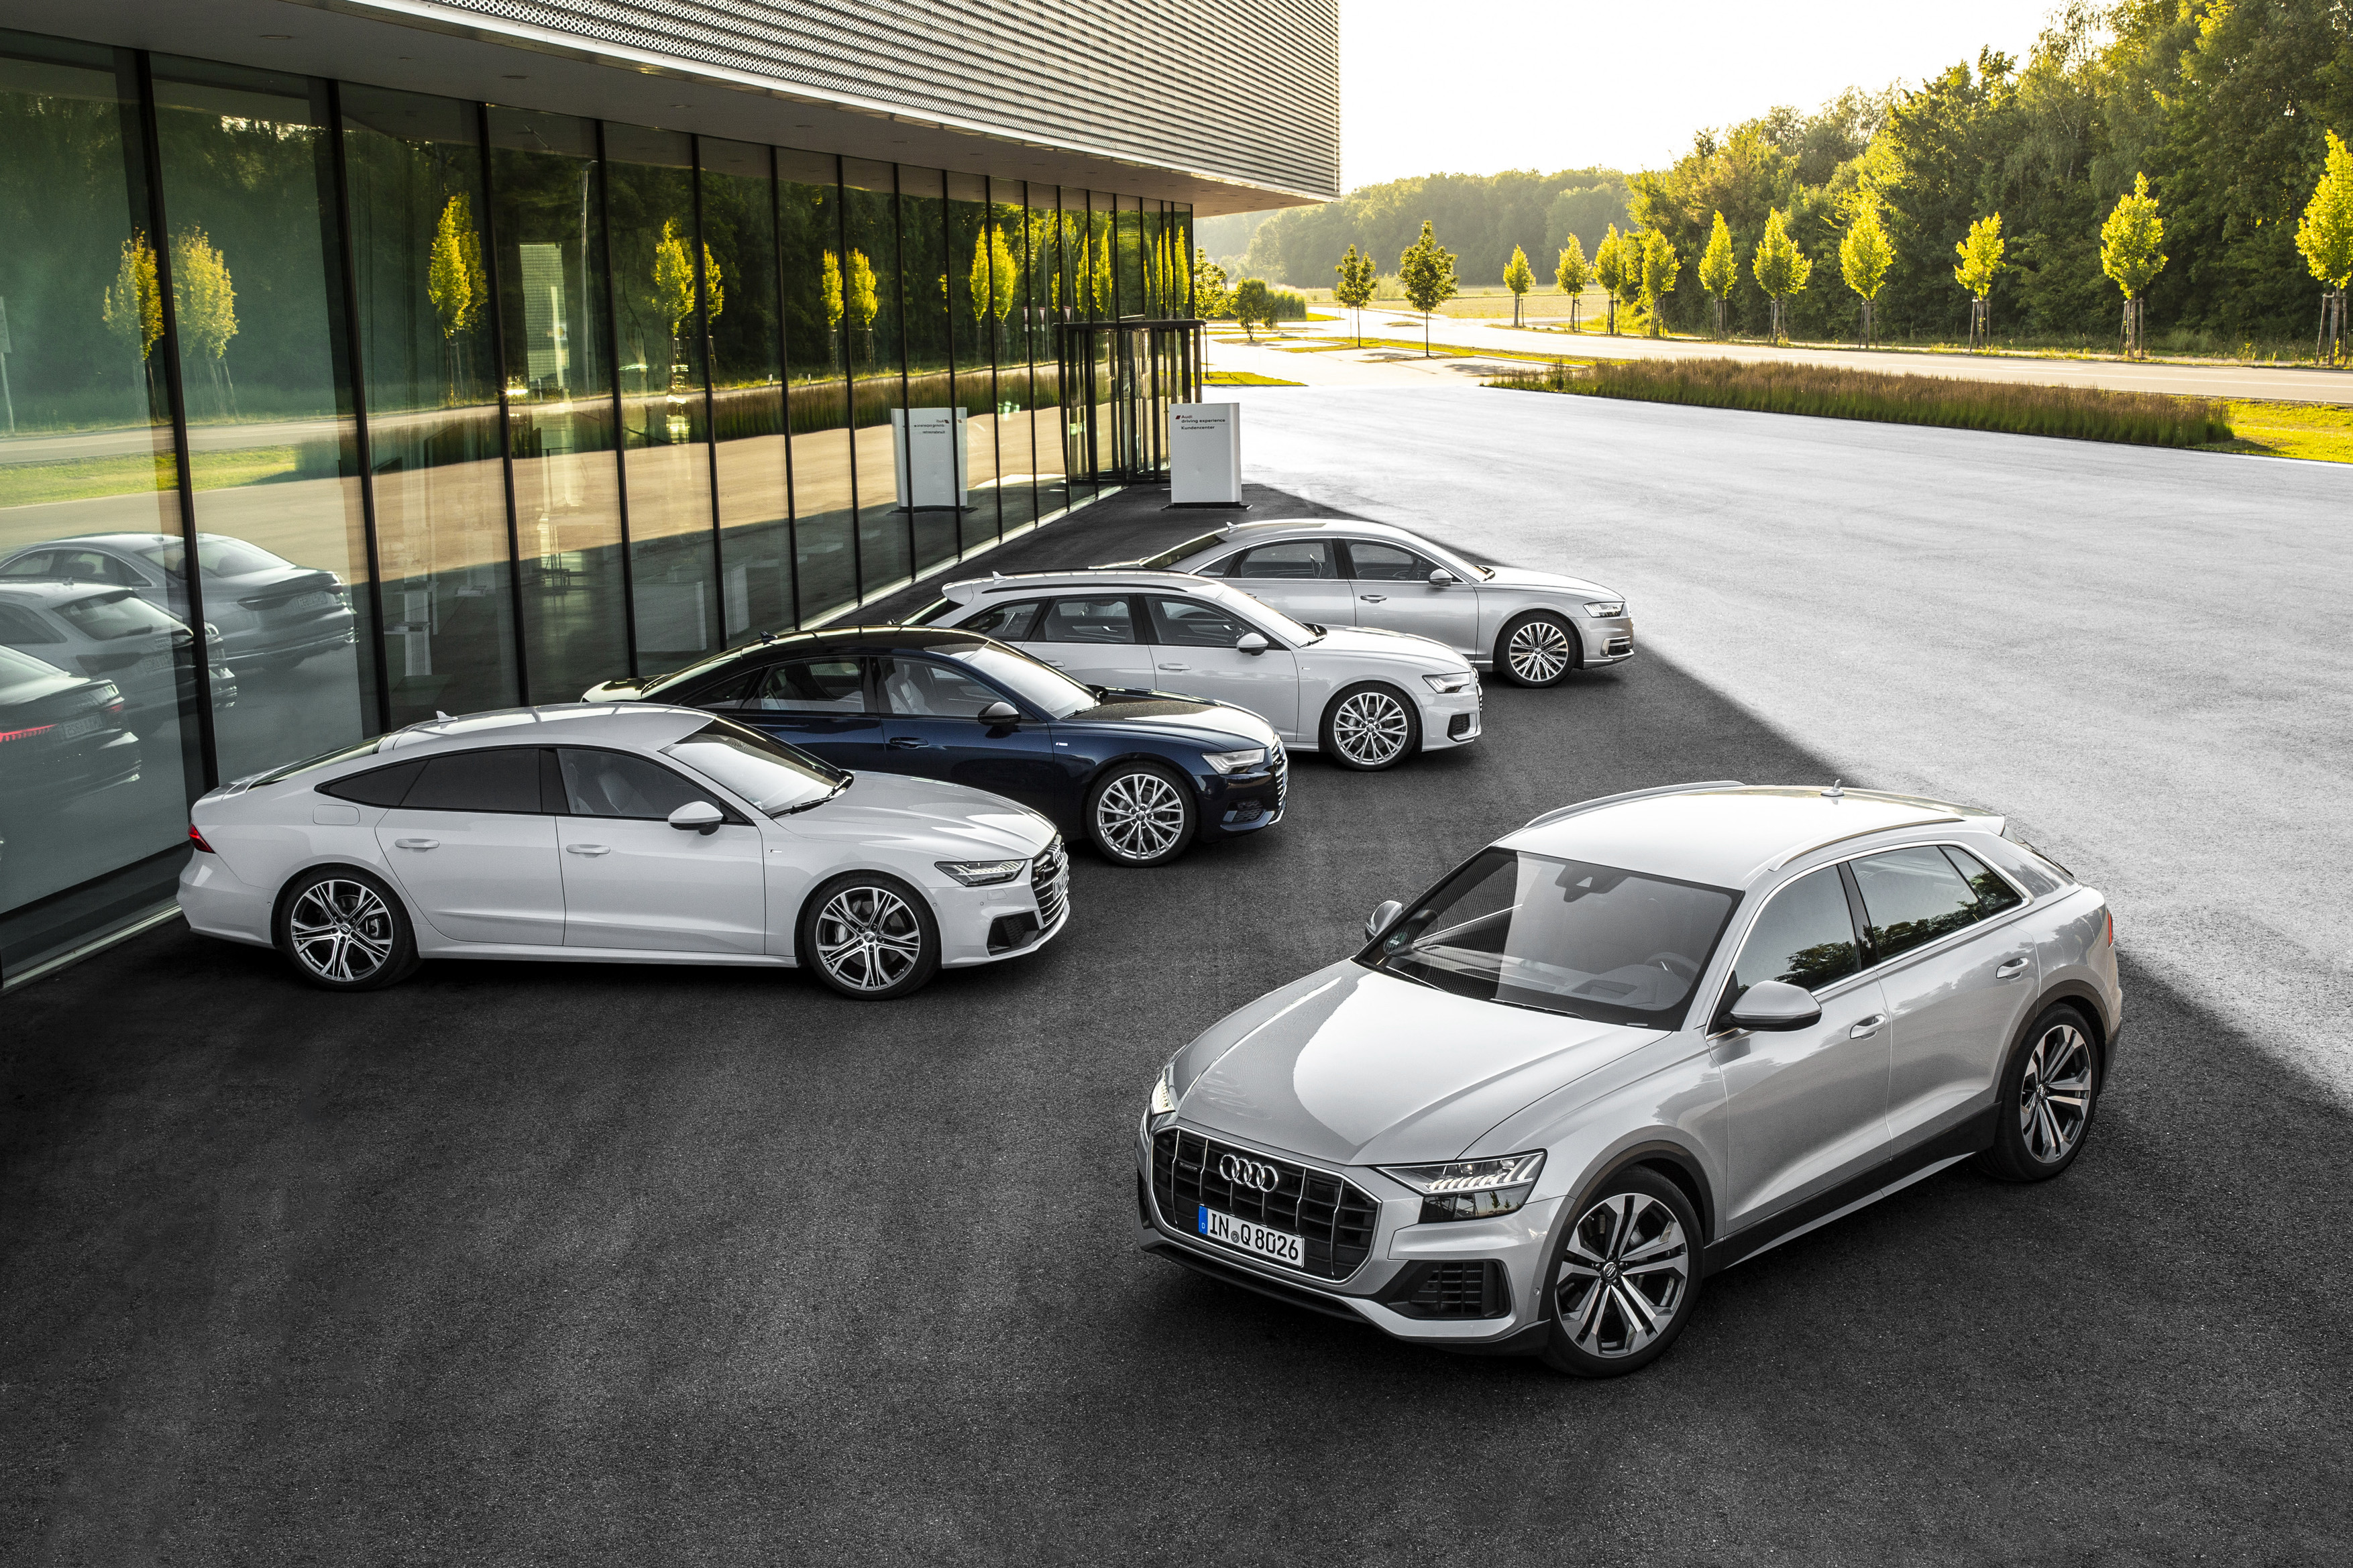 The New Four Door Coupé Audi Q8 Suv Now Available In Audi